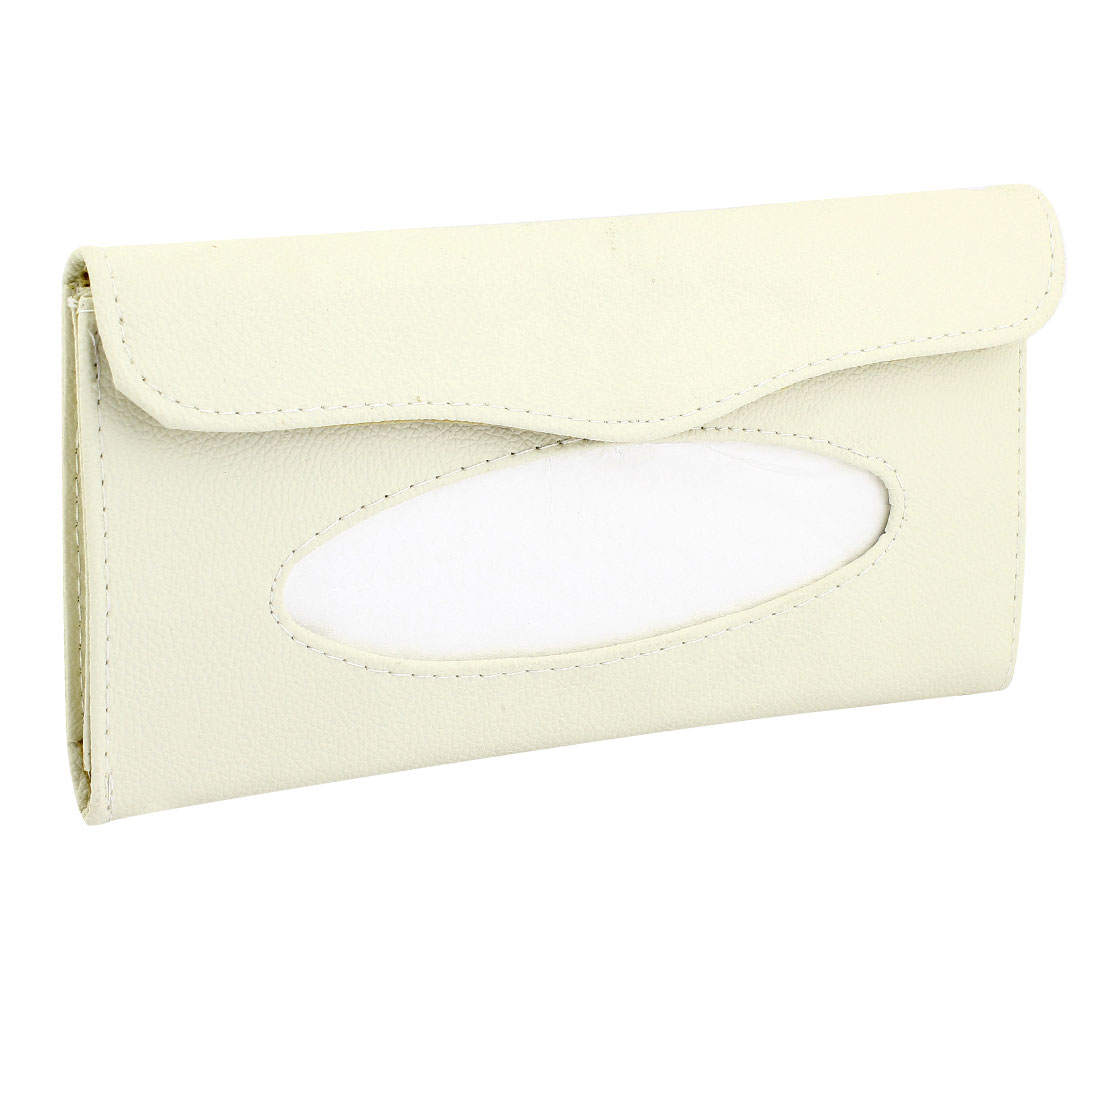 Ivory Faux Leather Car Vehicle Hook Loop Closure Paper Tissue Box Case Holder